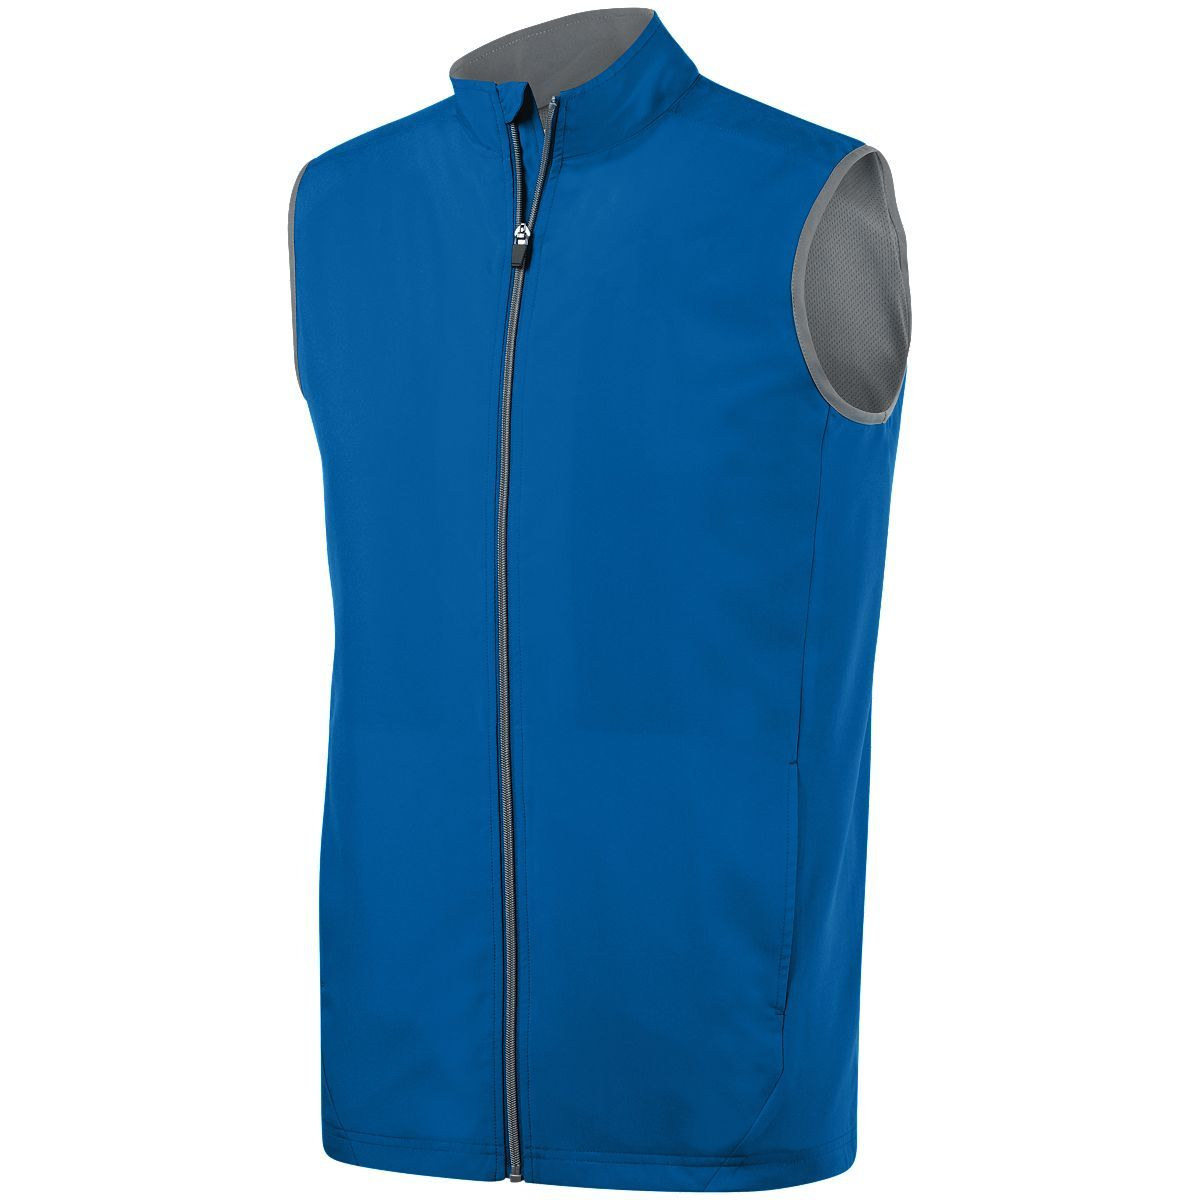 Preeminent Vest - ROYAL/GRAPHITE